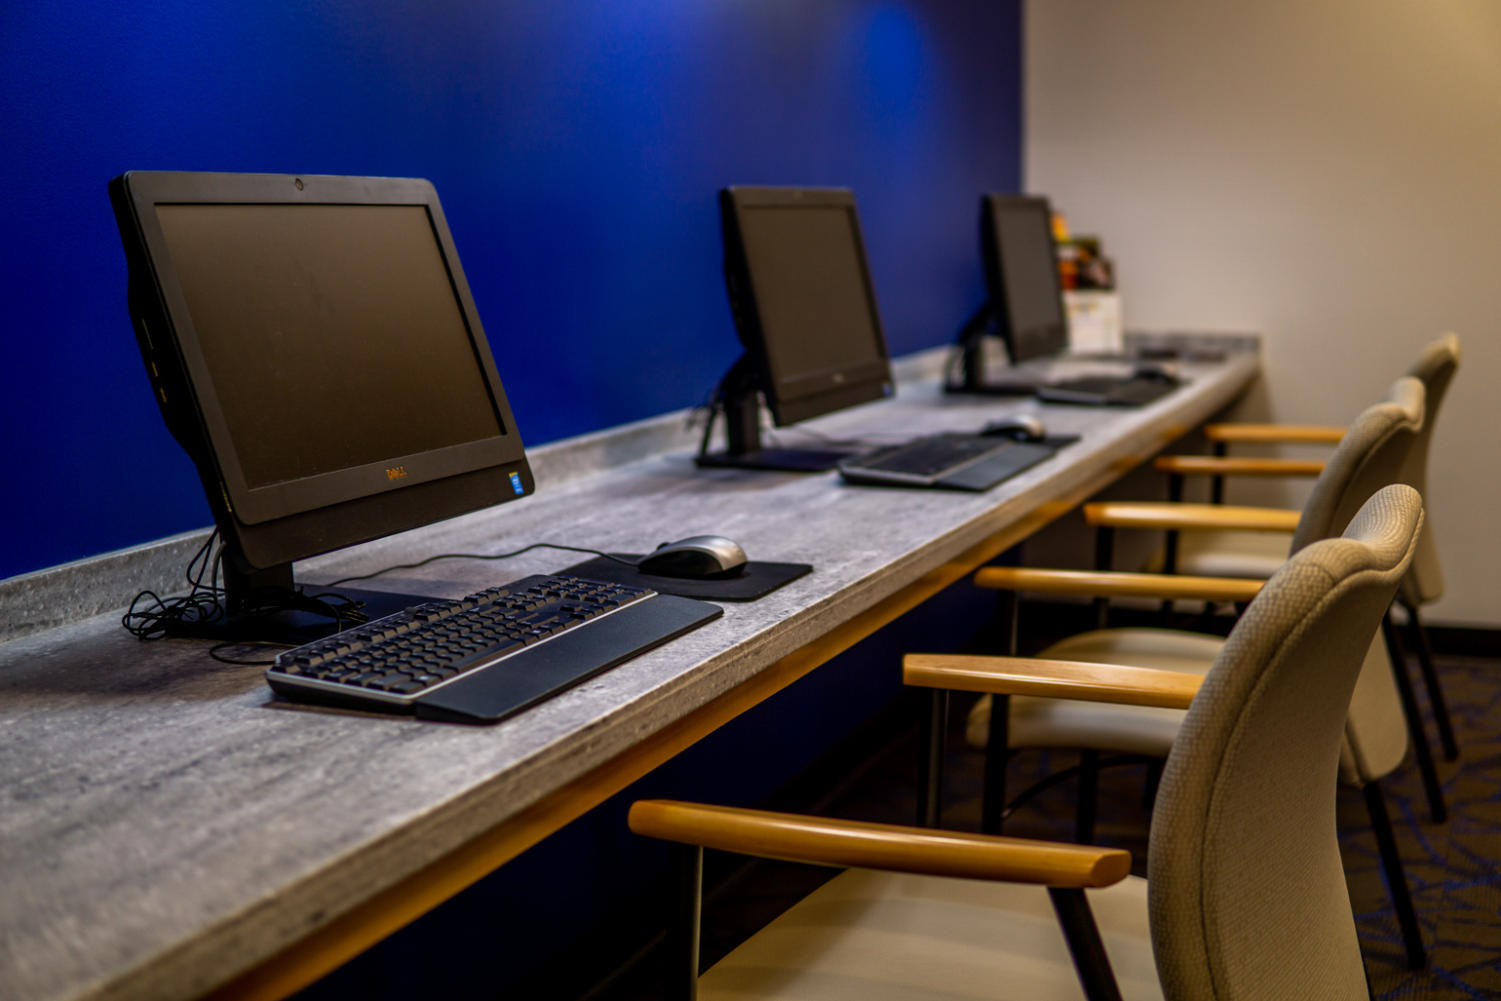 The+center%27s+new+computer+workstations+sit+awaiting+users.+The+center+also+provides+textbook+resources+and+private+testing+rooms.+Photo+credit%3A+Jacob+Meyer